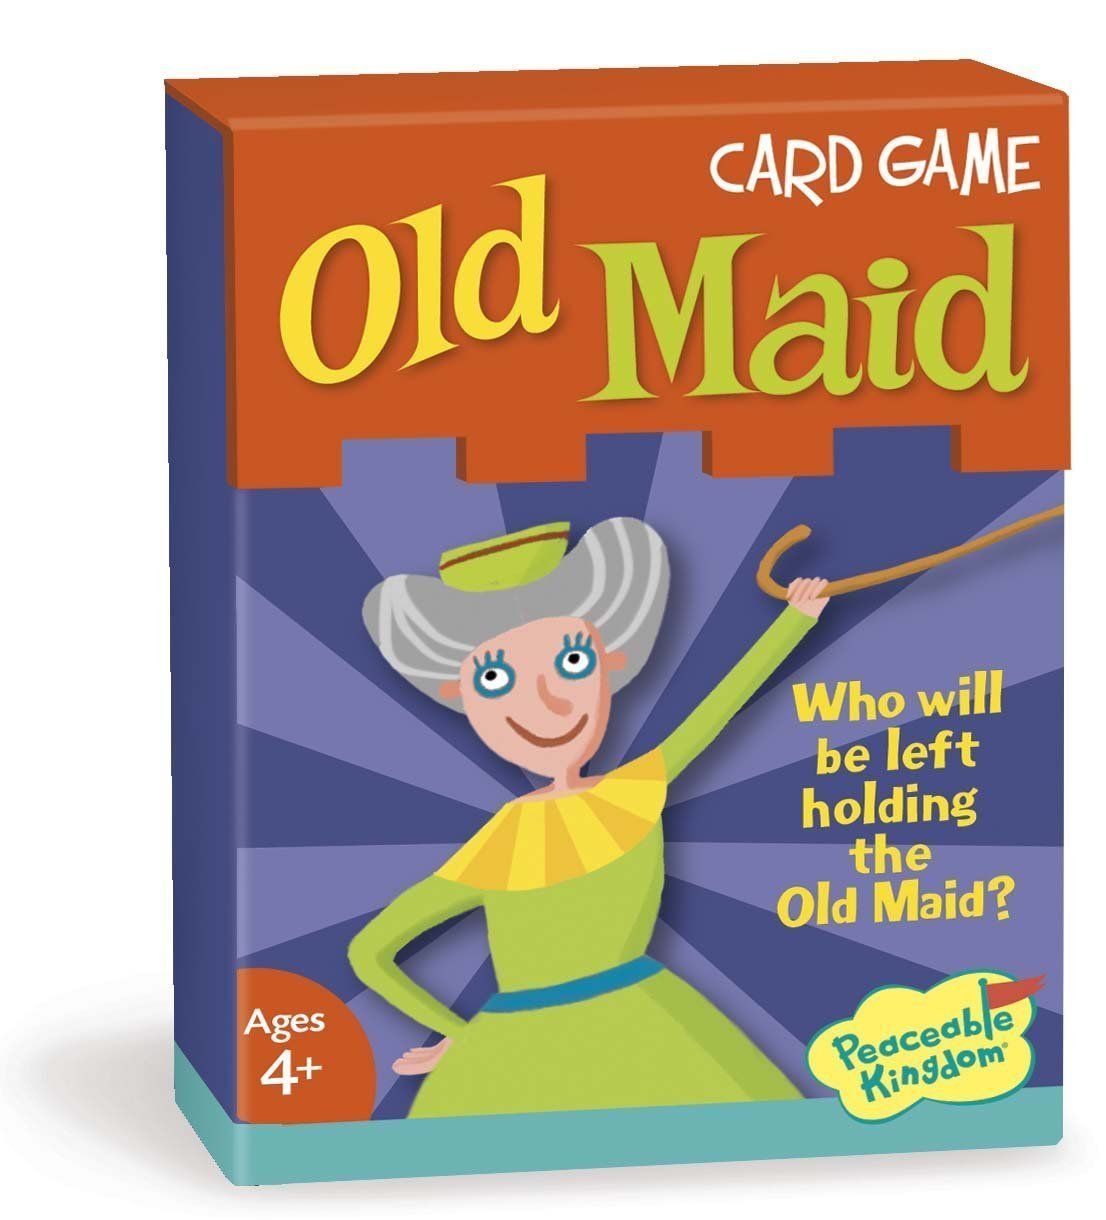 buy peaceable kingdom - old maid card game | wish list: baby & kids